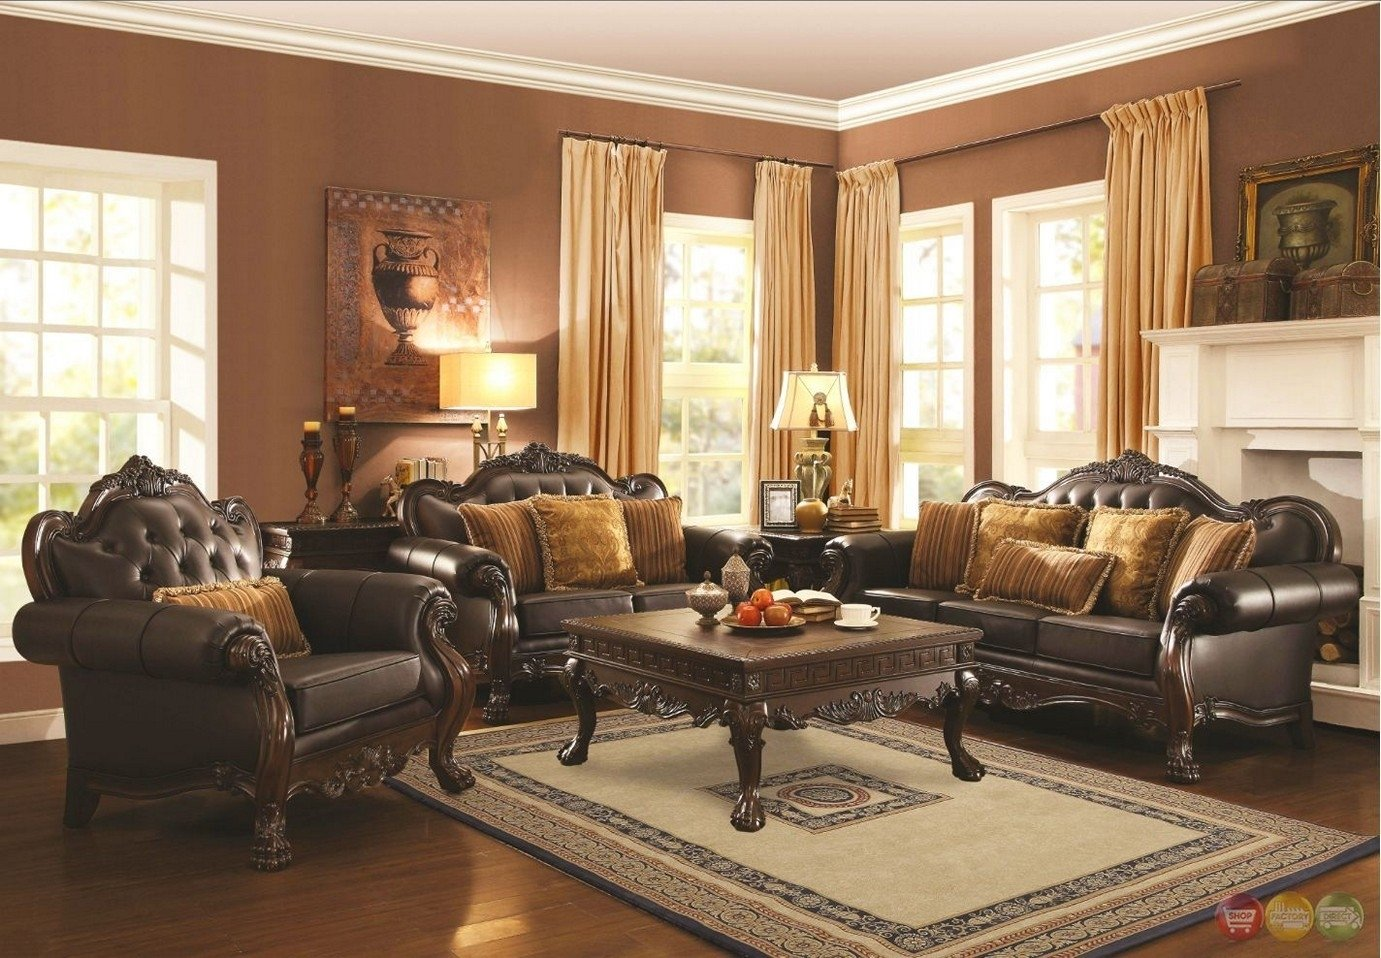 beautiful formal living rooms clean room colors 10 spectacular decorating ideas furniture warm